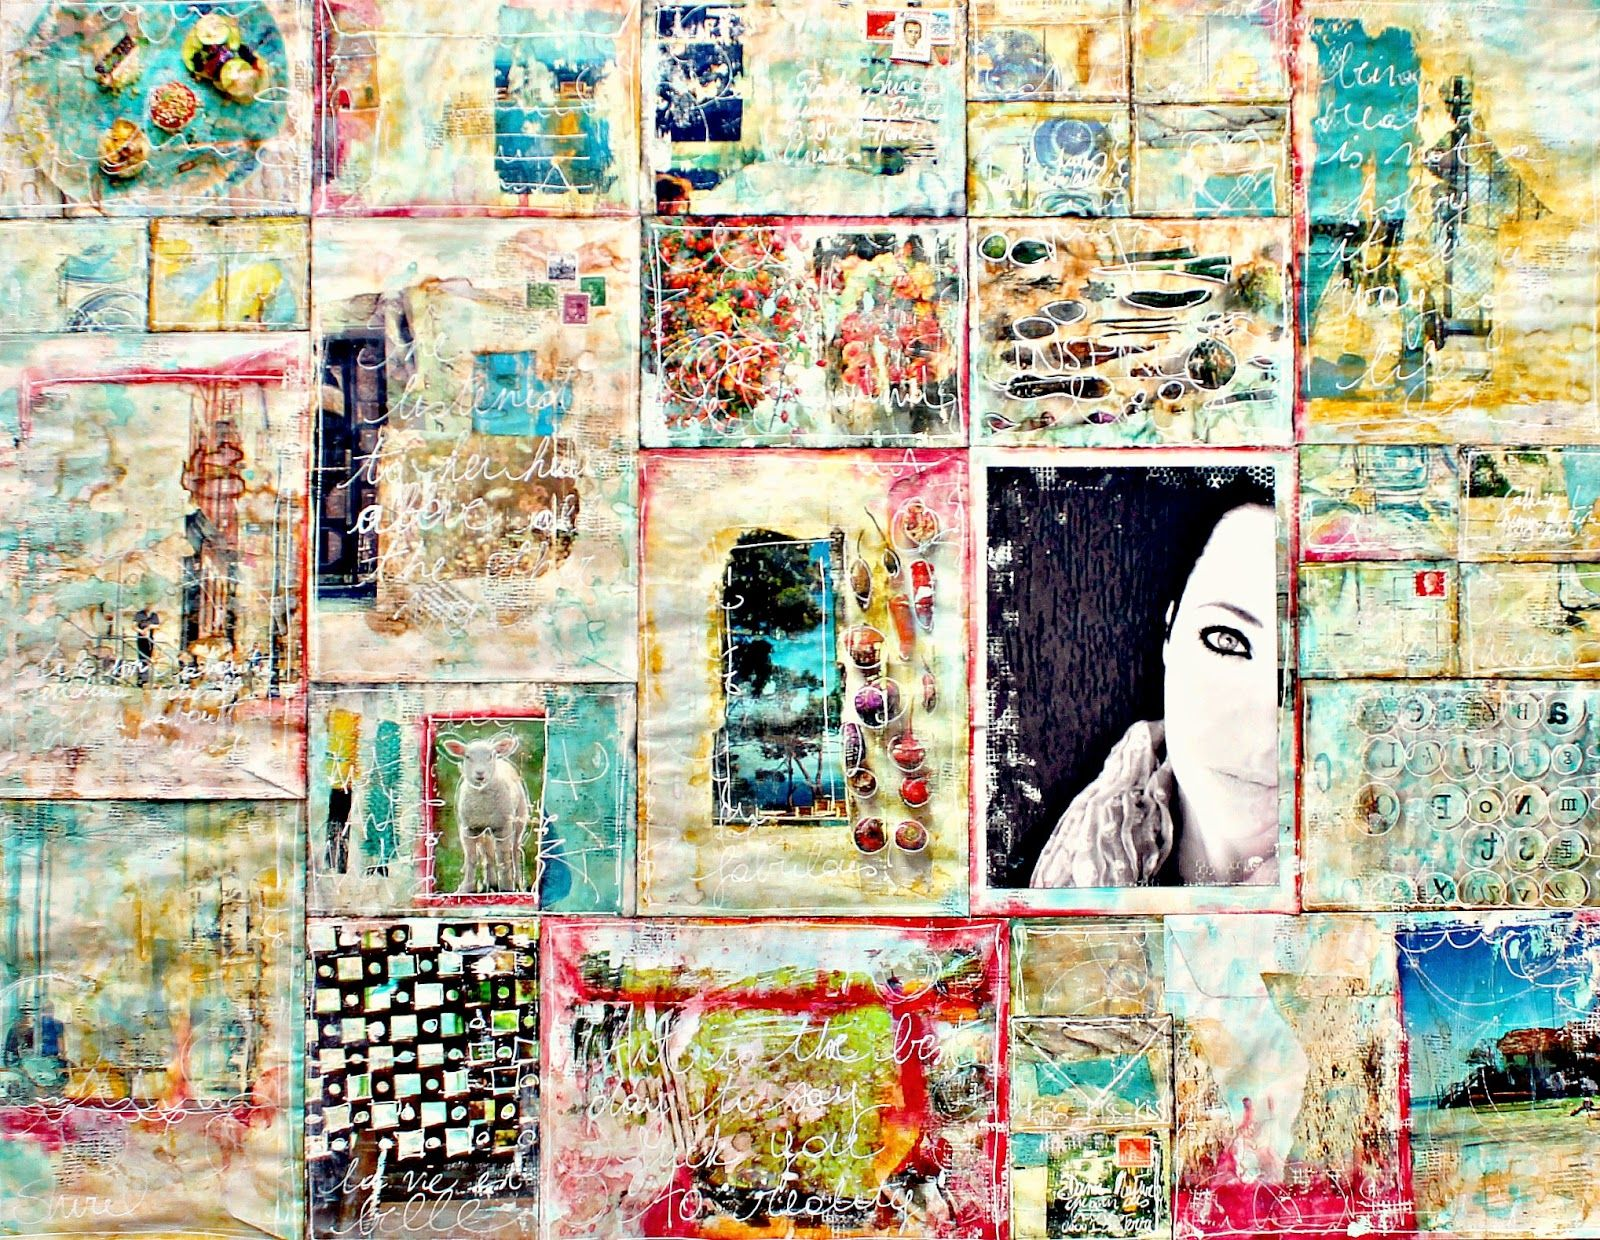 Shirel Studio original Mixed Media